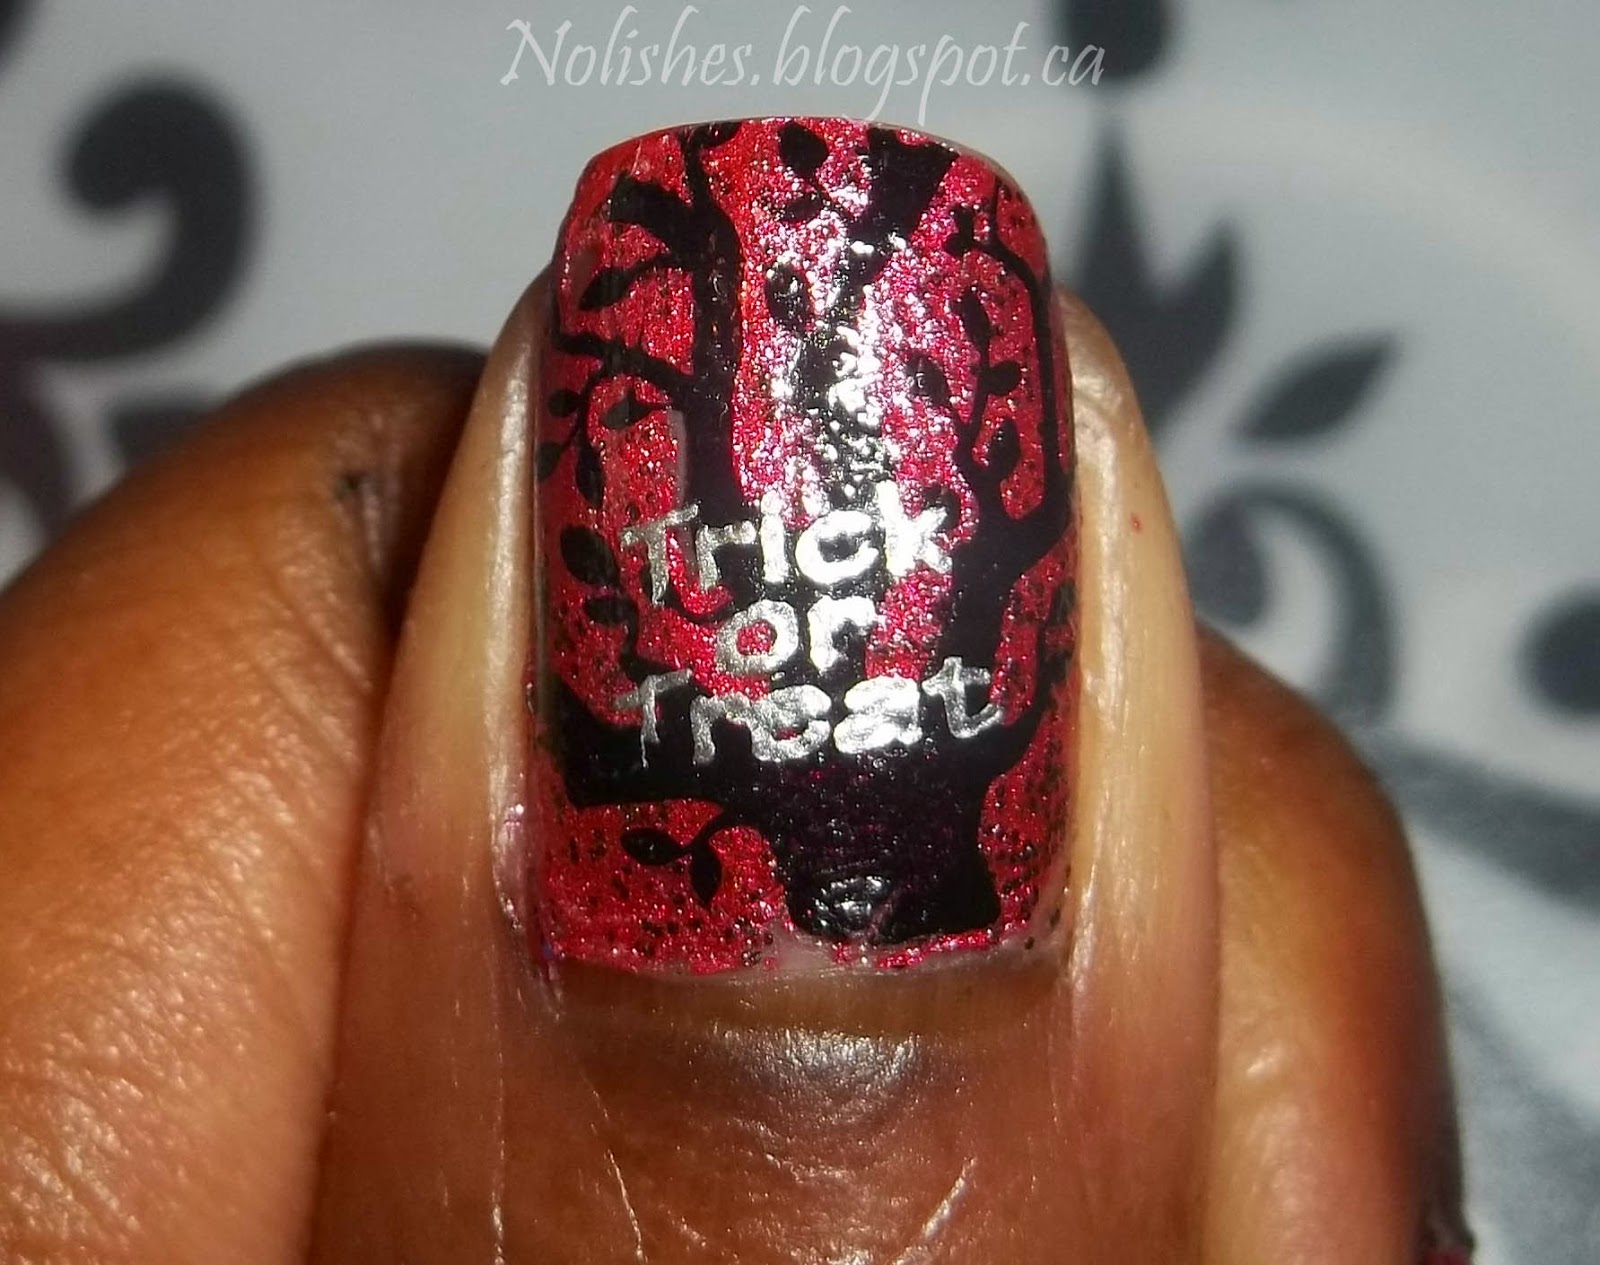 Halloween Themed Nail Stamping Test Mani, using Bunny Nails Stamping Plates BuNa-A, and HD-C. Polishes Used: China Glaze 'I Love Your Guts', Sally Hansen 'Silver Sweep', and Konad special polish in 'Black'.